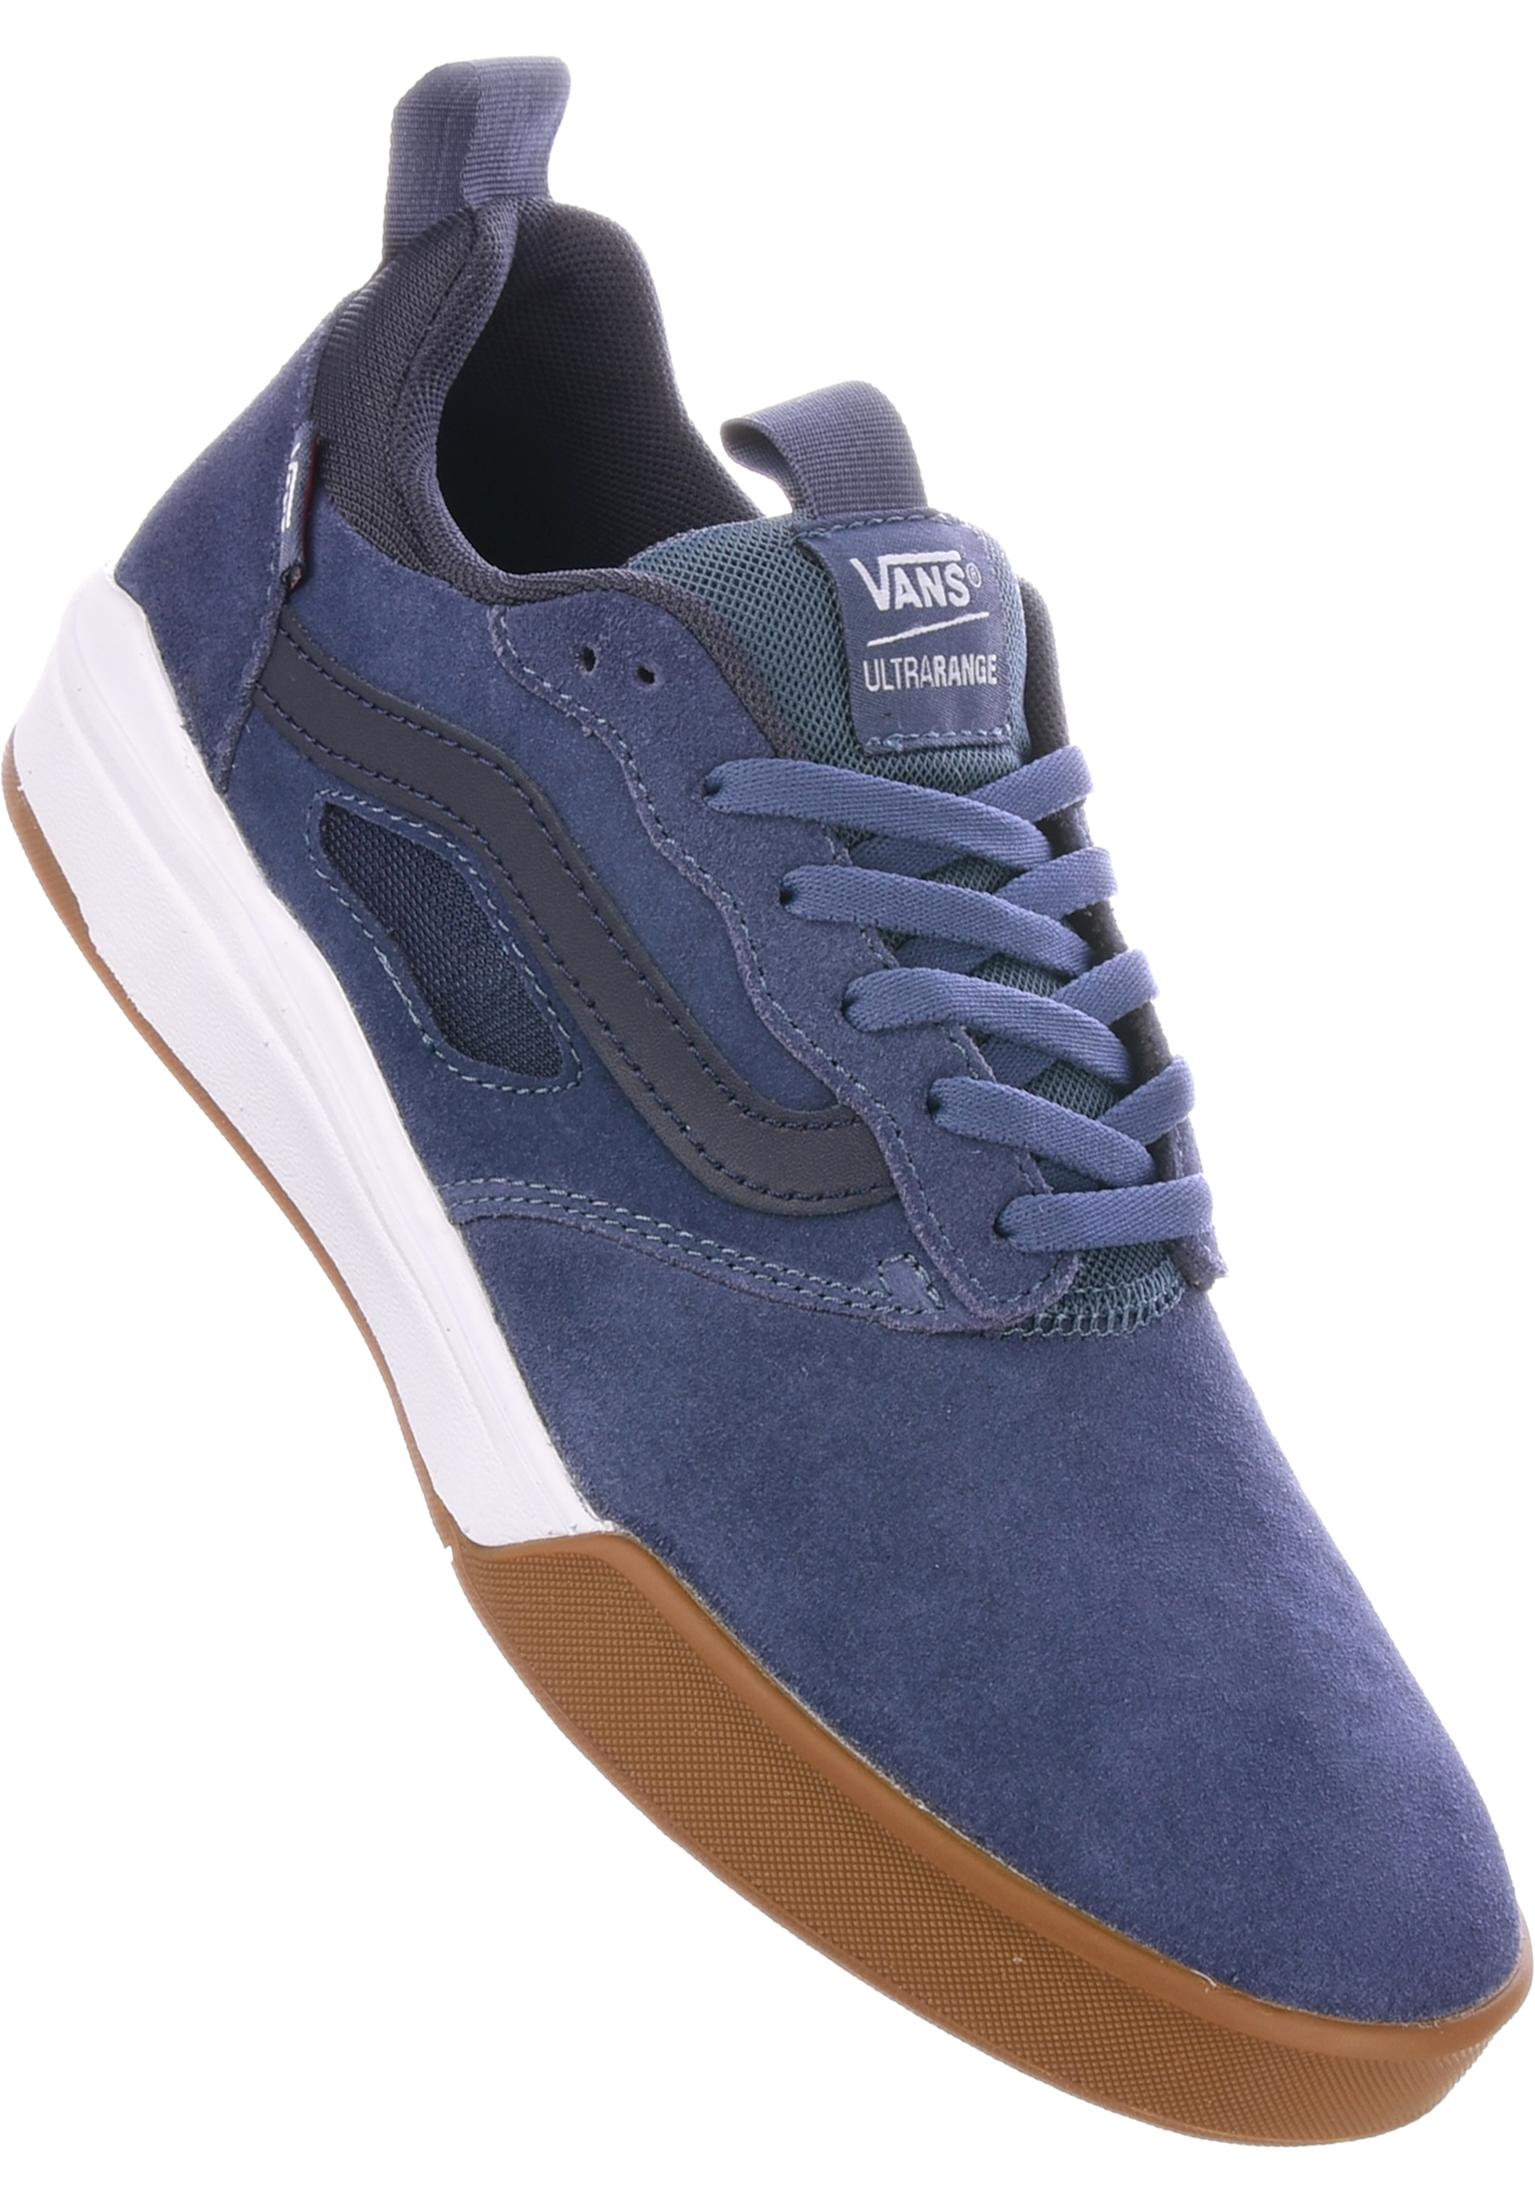 6f9ed343bf1 UltraRange Pro Vans All Shoes in vintageindigo-gum-white for Men